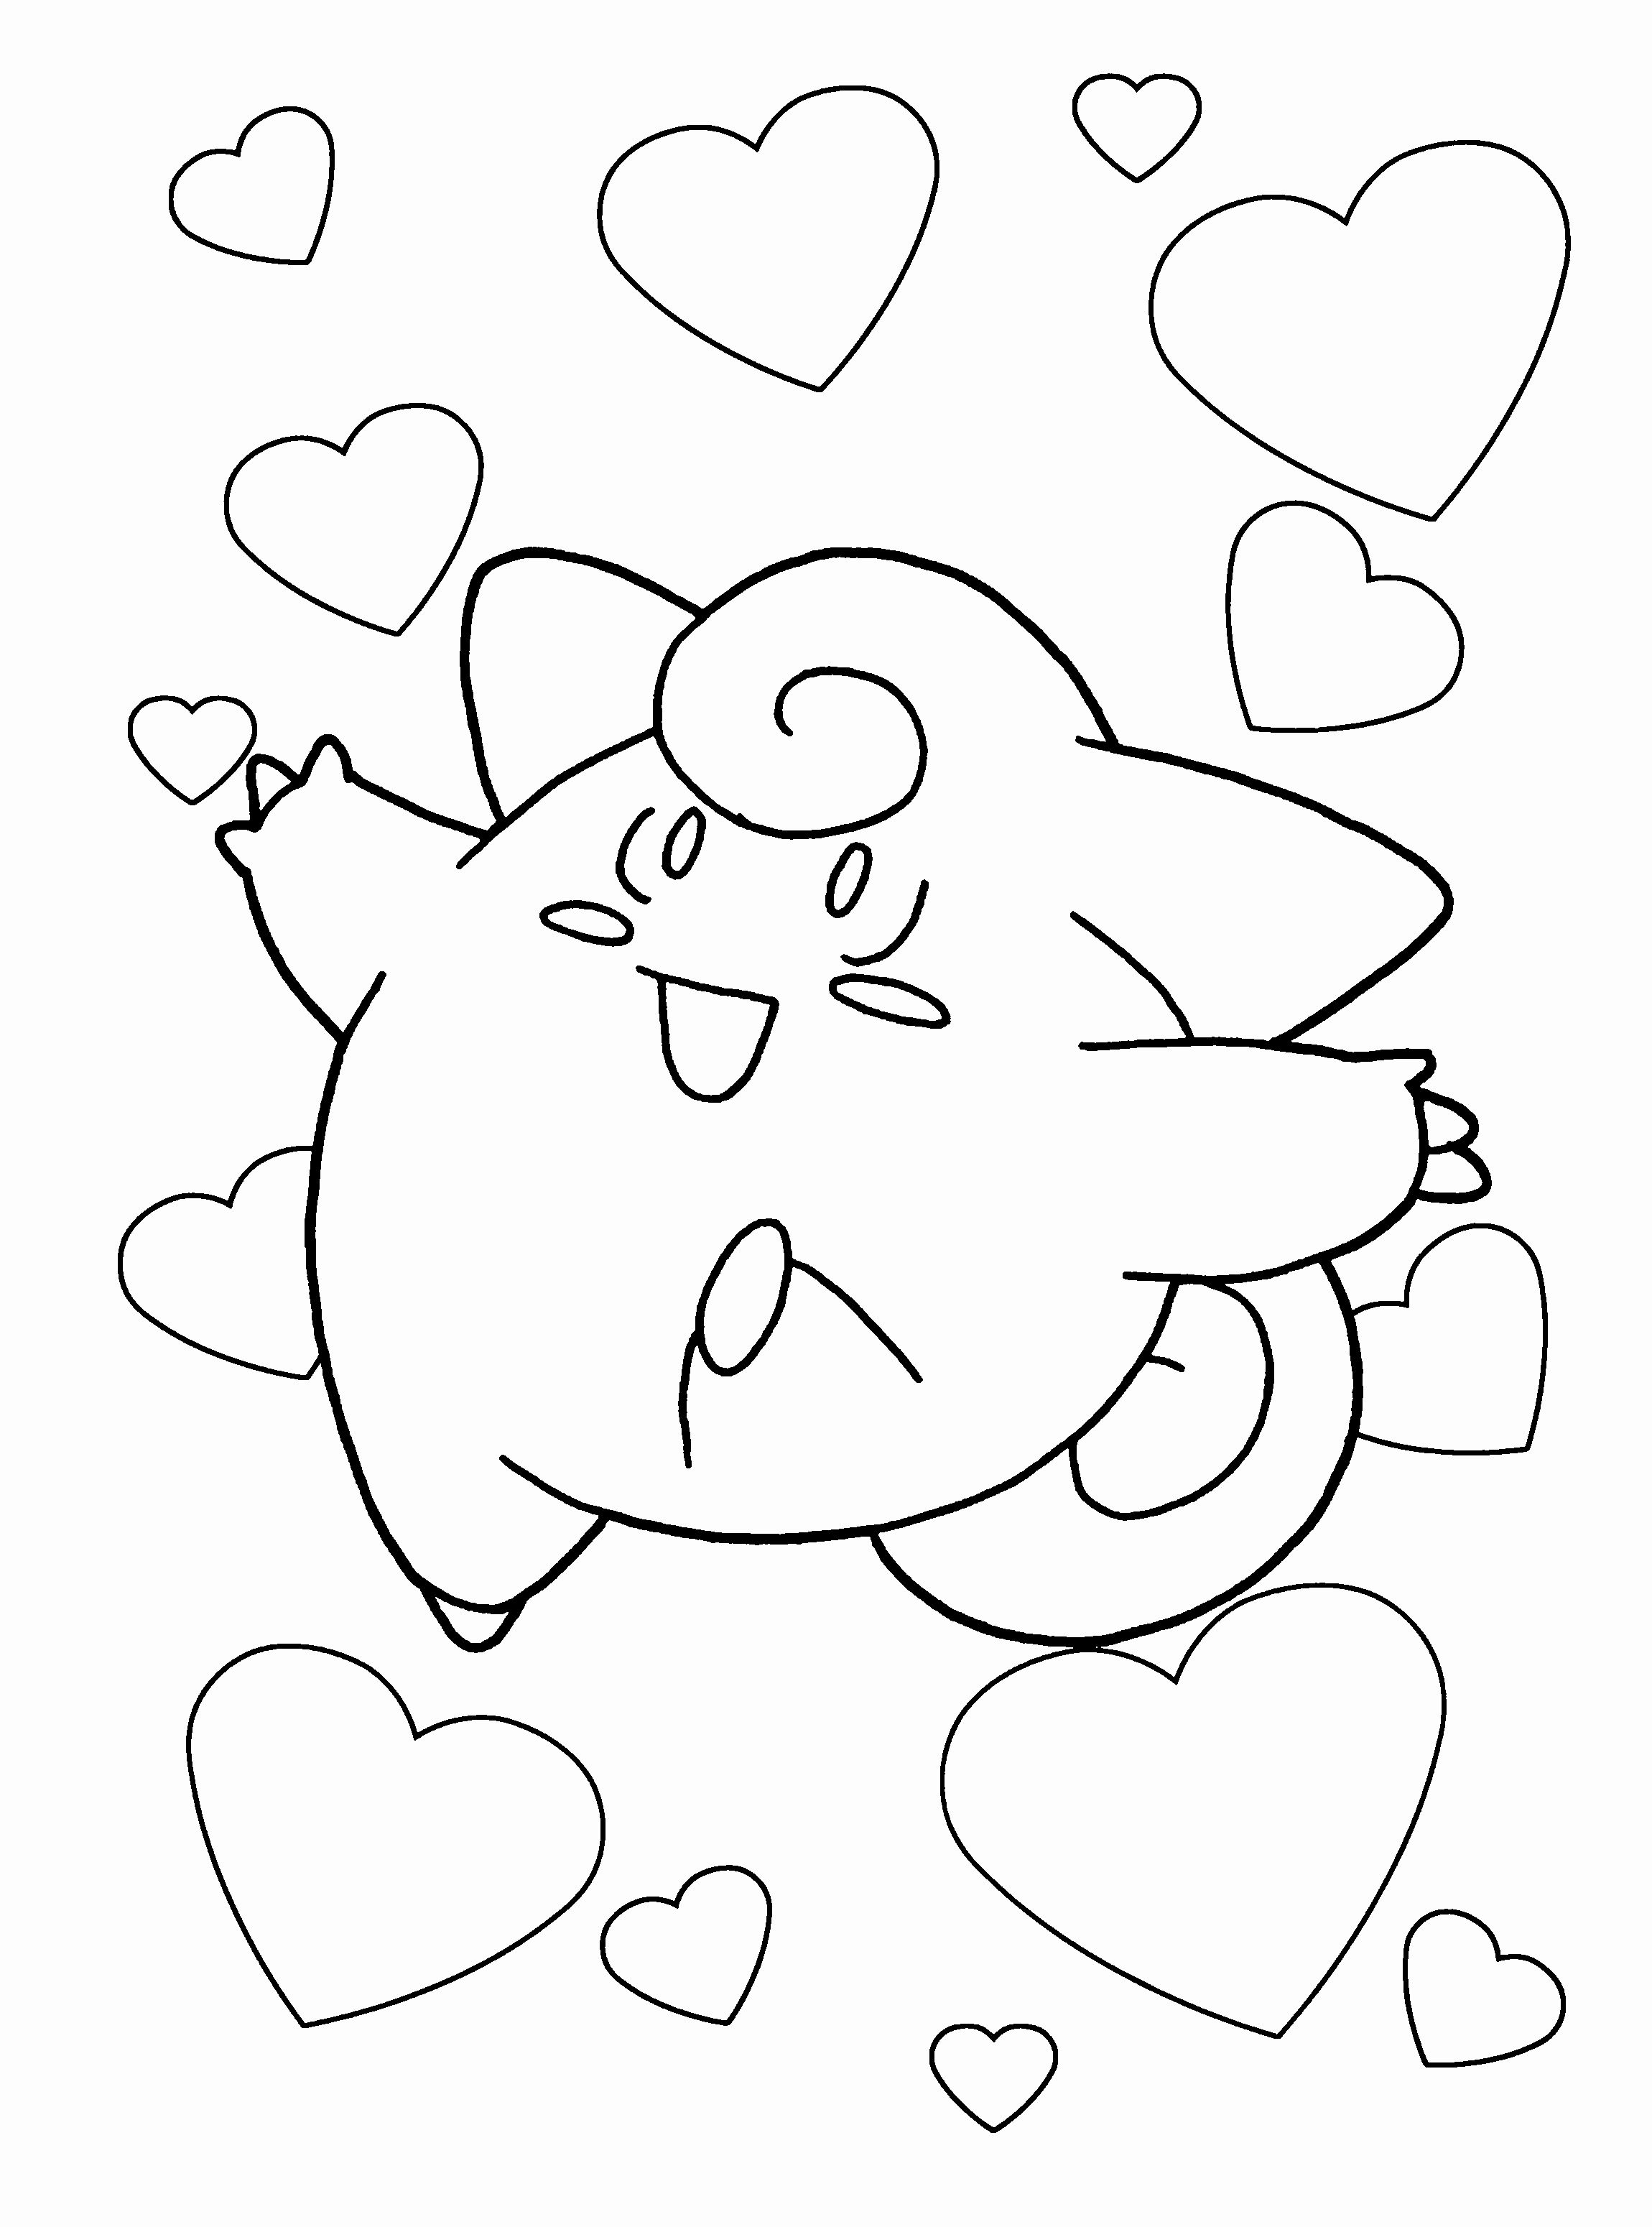 Pokemon Printable Coloring Pages Best Of Pokemon Coloring Pages Join Your Favorite Pokemon O Pokemon Coloring Pages Pokemon Coloring Sheets Love Coloring Pages